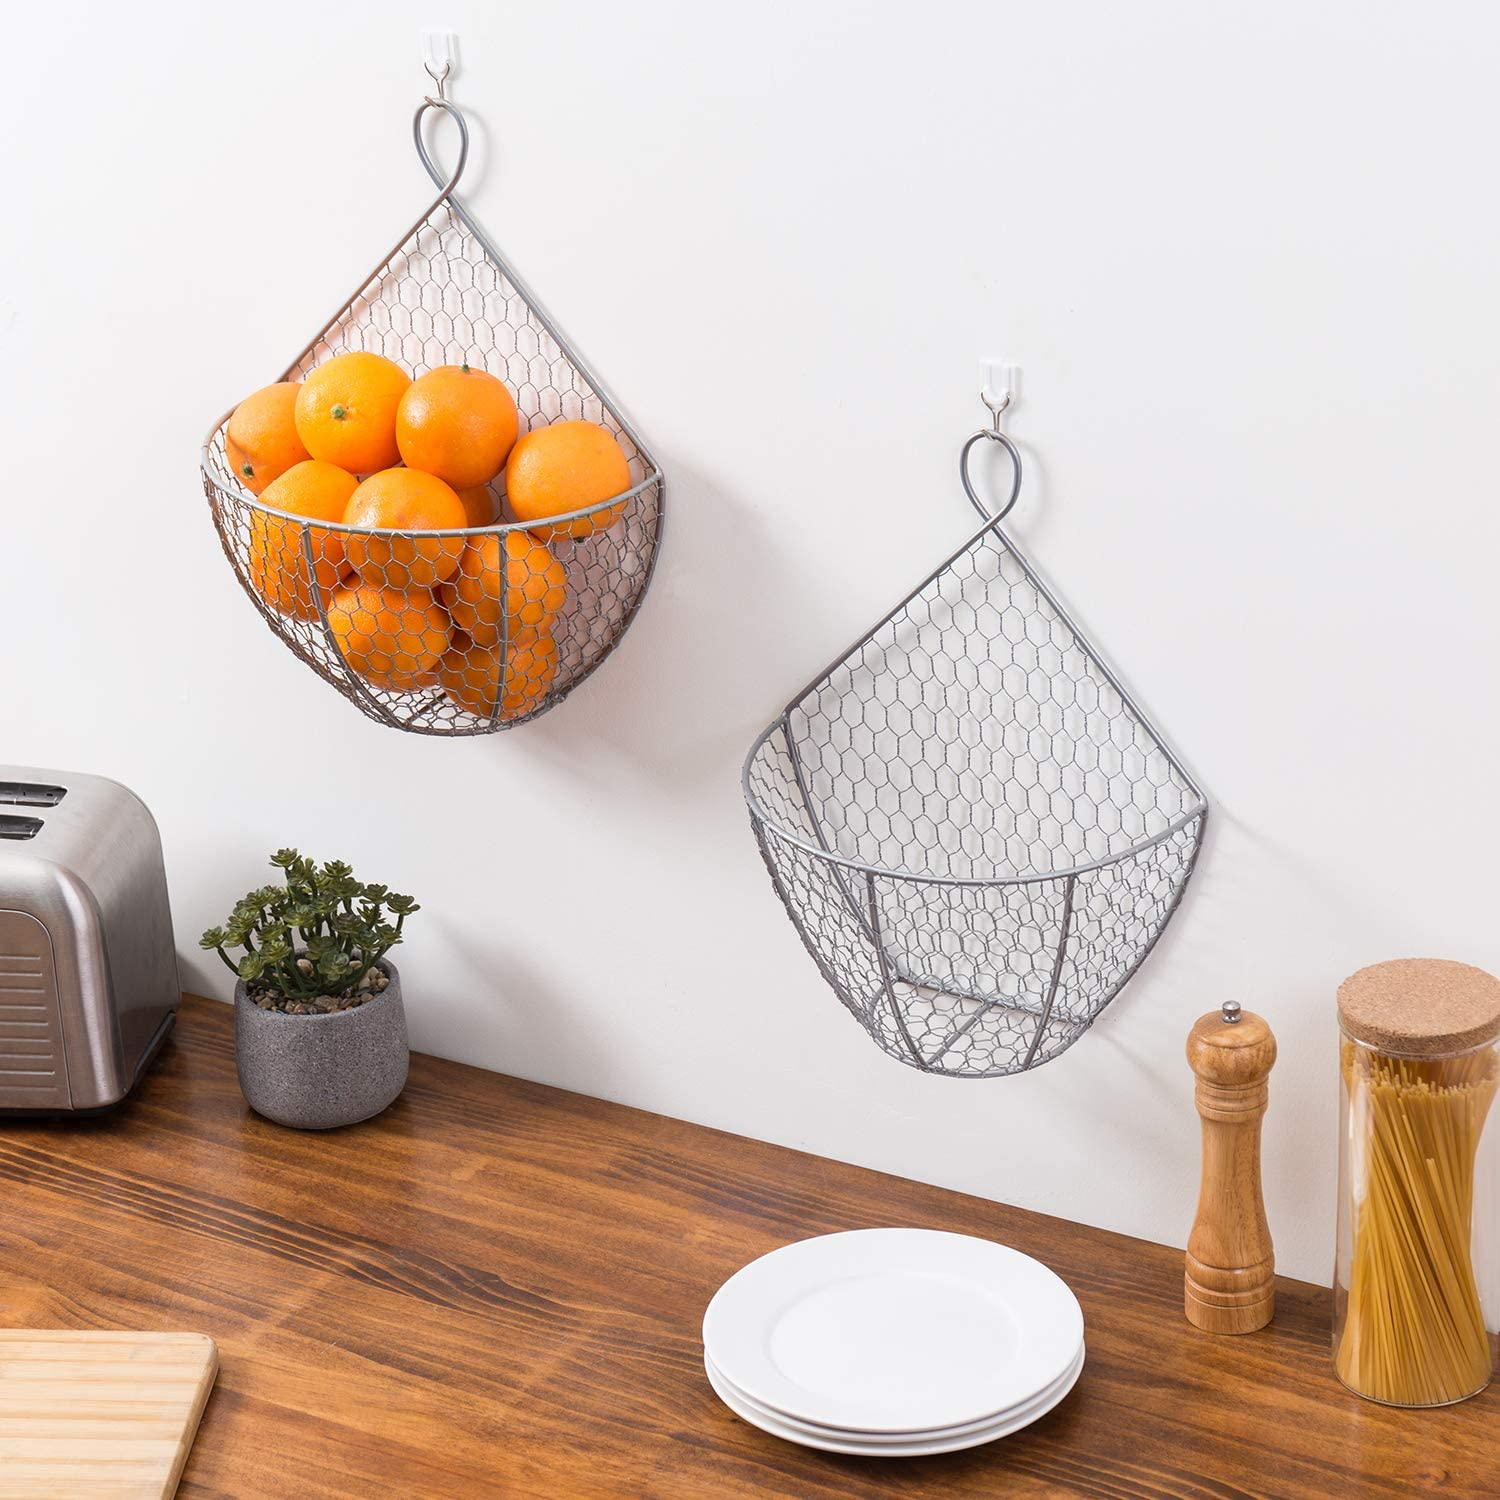 MyGift Silver Metal Chicken Wire Wall Mounted Hanging Produce Baskets Set of 2